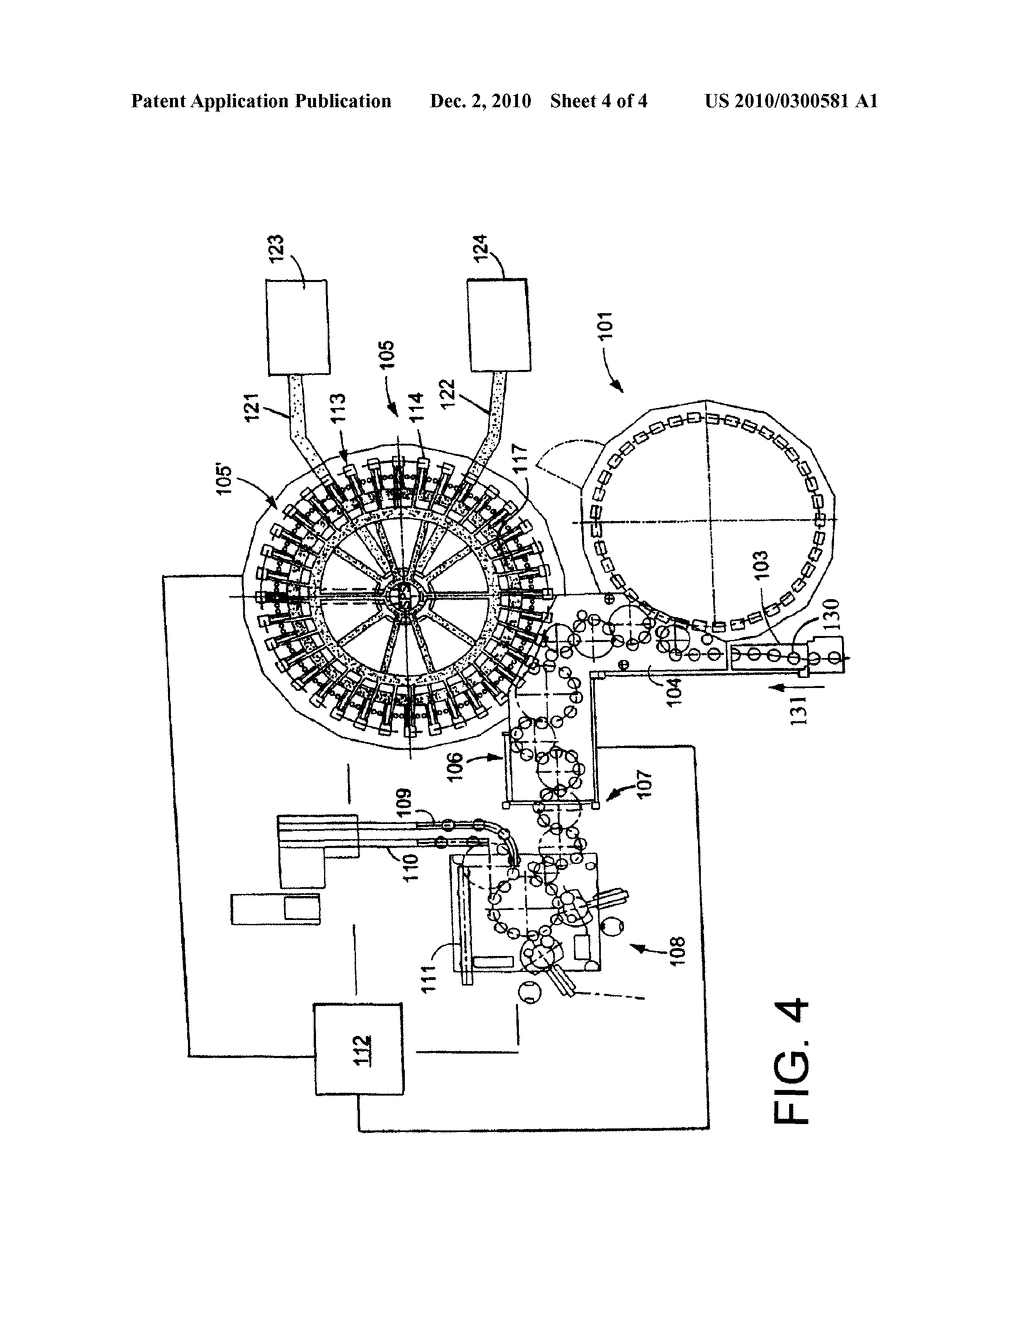 Diagram of labeling machine new wiring diagram 2018 beverage bottle filling plant with a beverage bottle labeling microscope labeled diagram of a student labeled diagram of a button maker machine compound pooptronica